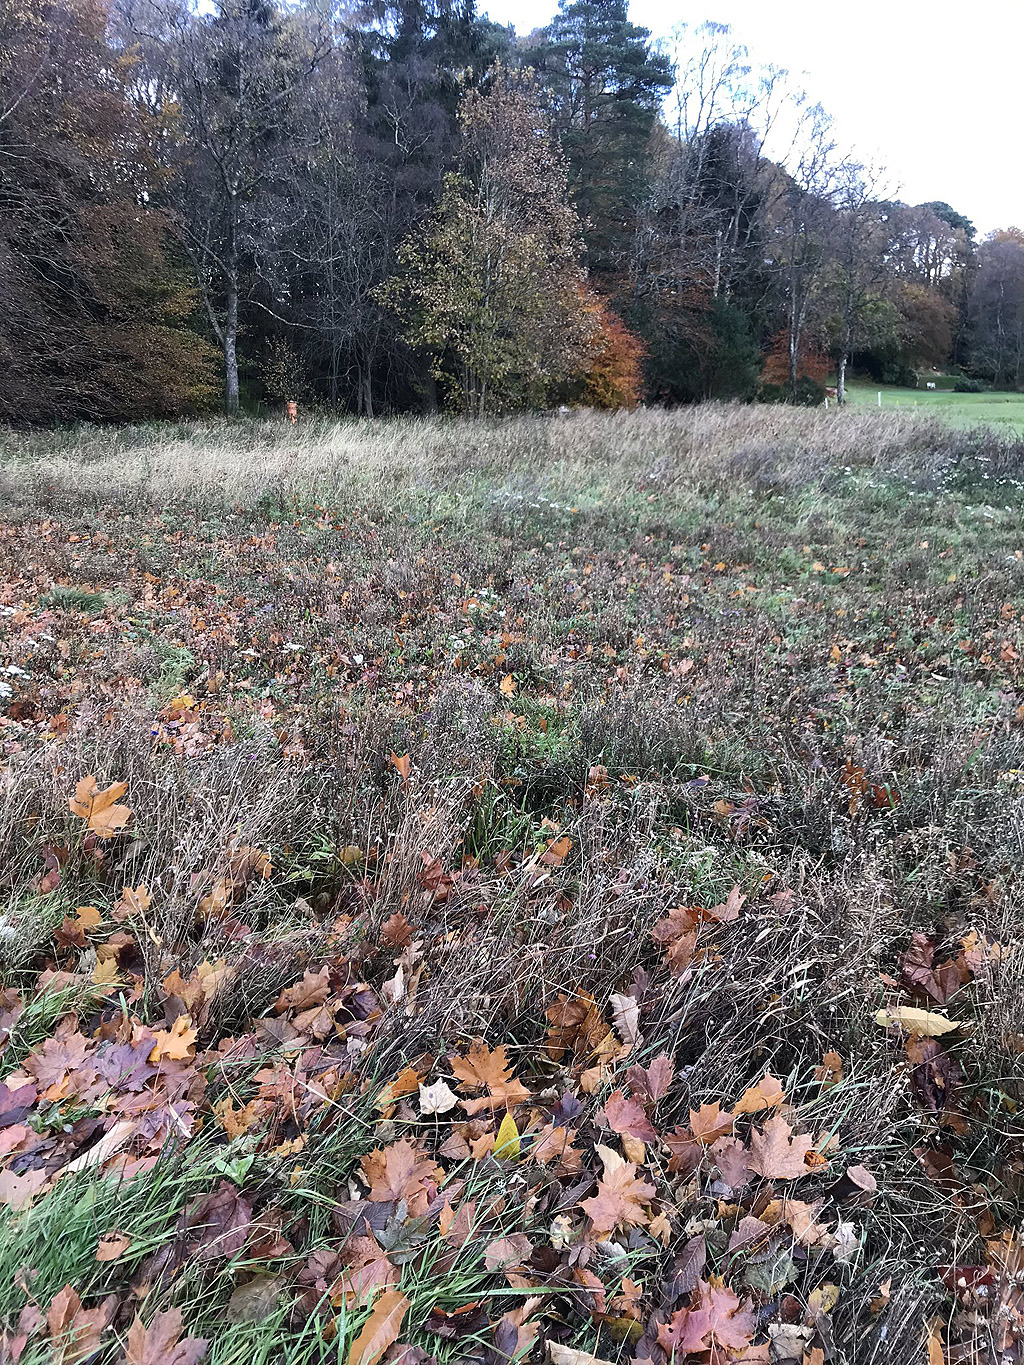 Banchory wildflower area bashed to drop out seeds in October